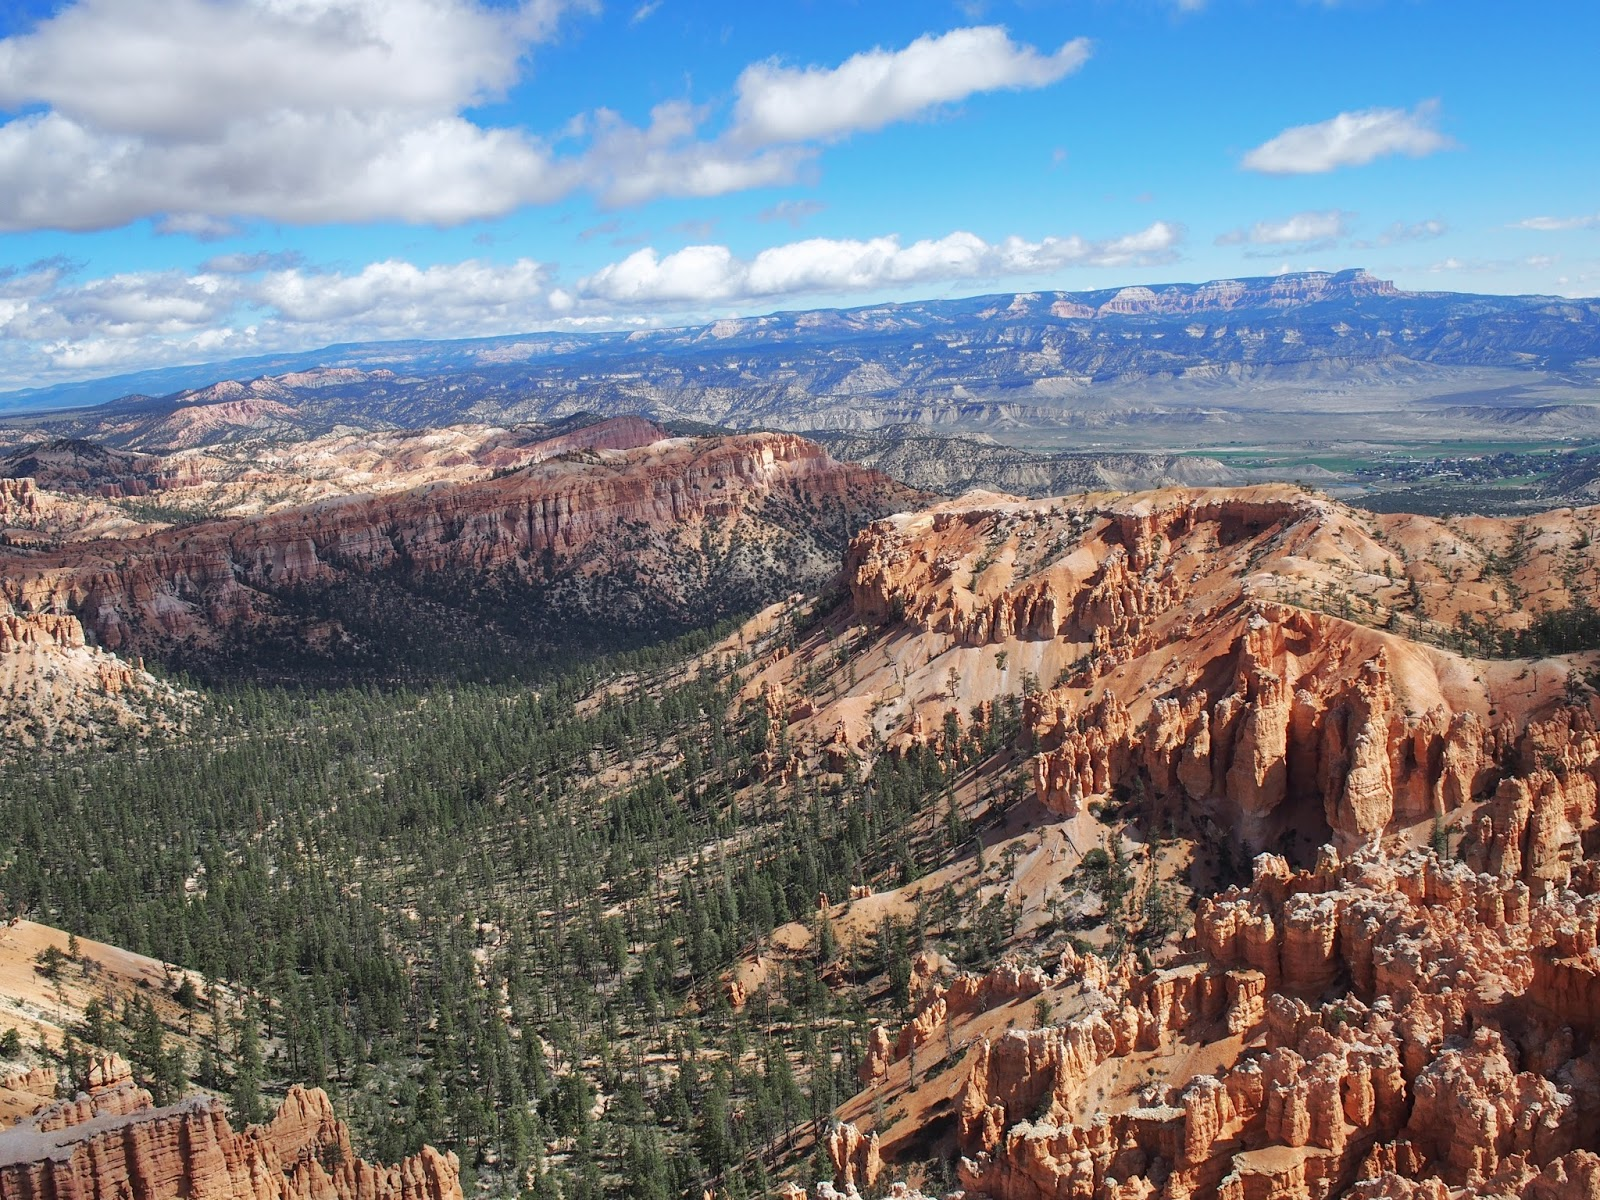 View from Bryce Point, #BrycePoint #Bryce Canyon #utah #hoodoos 2014